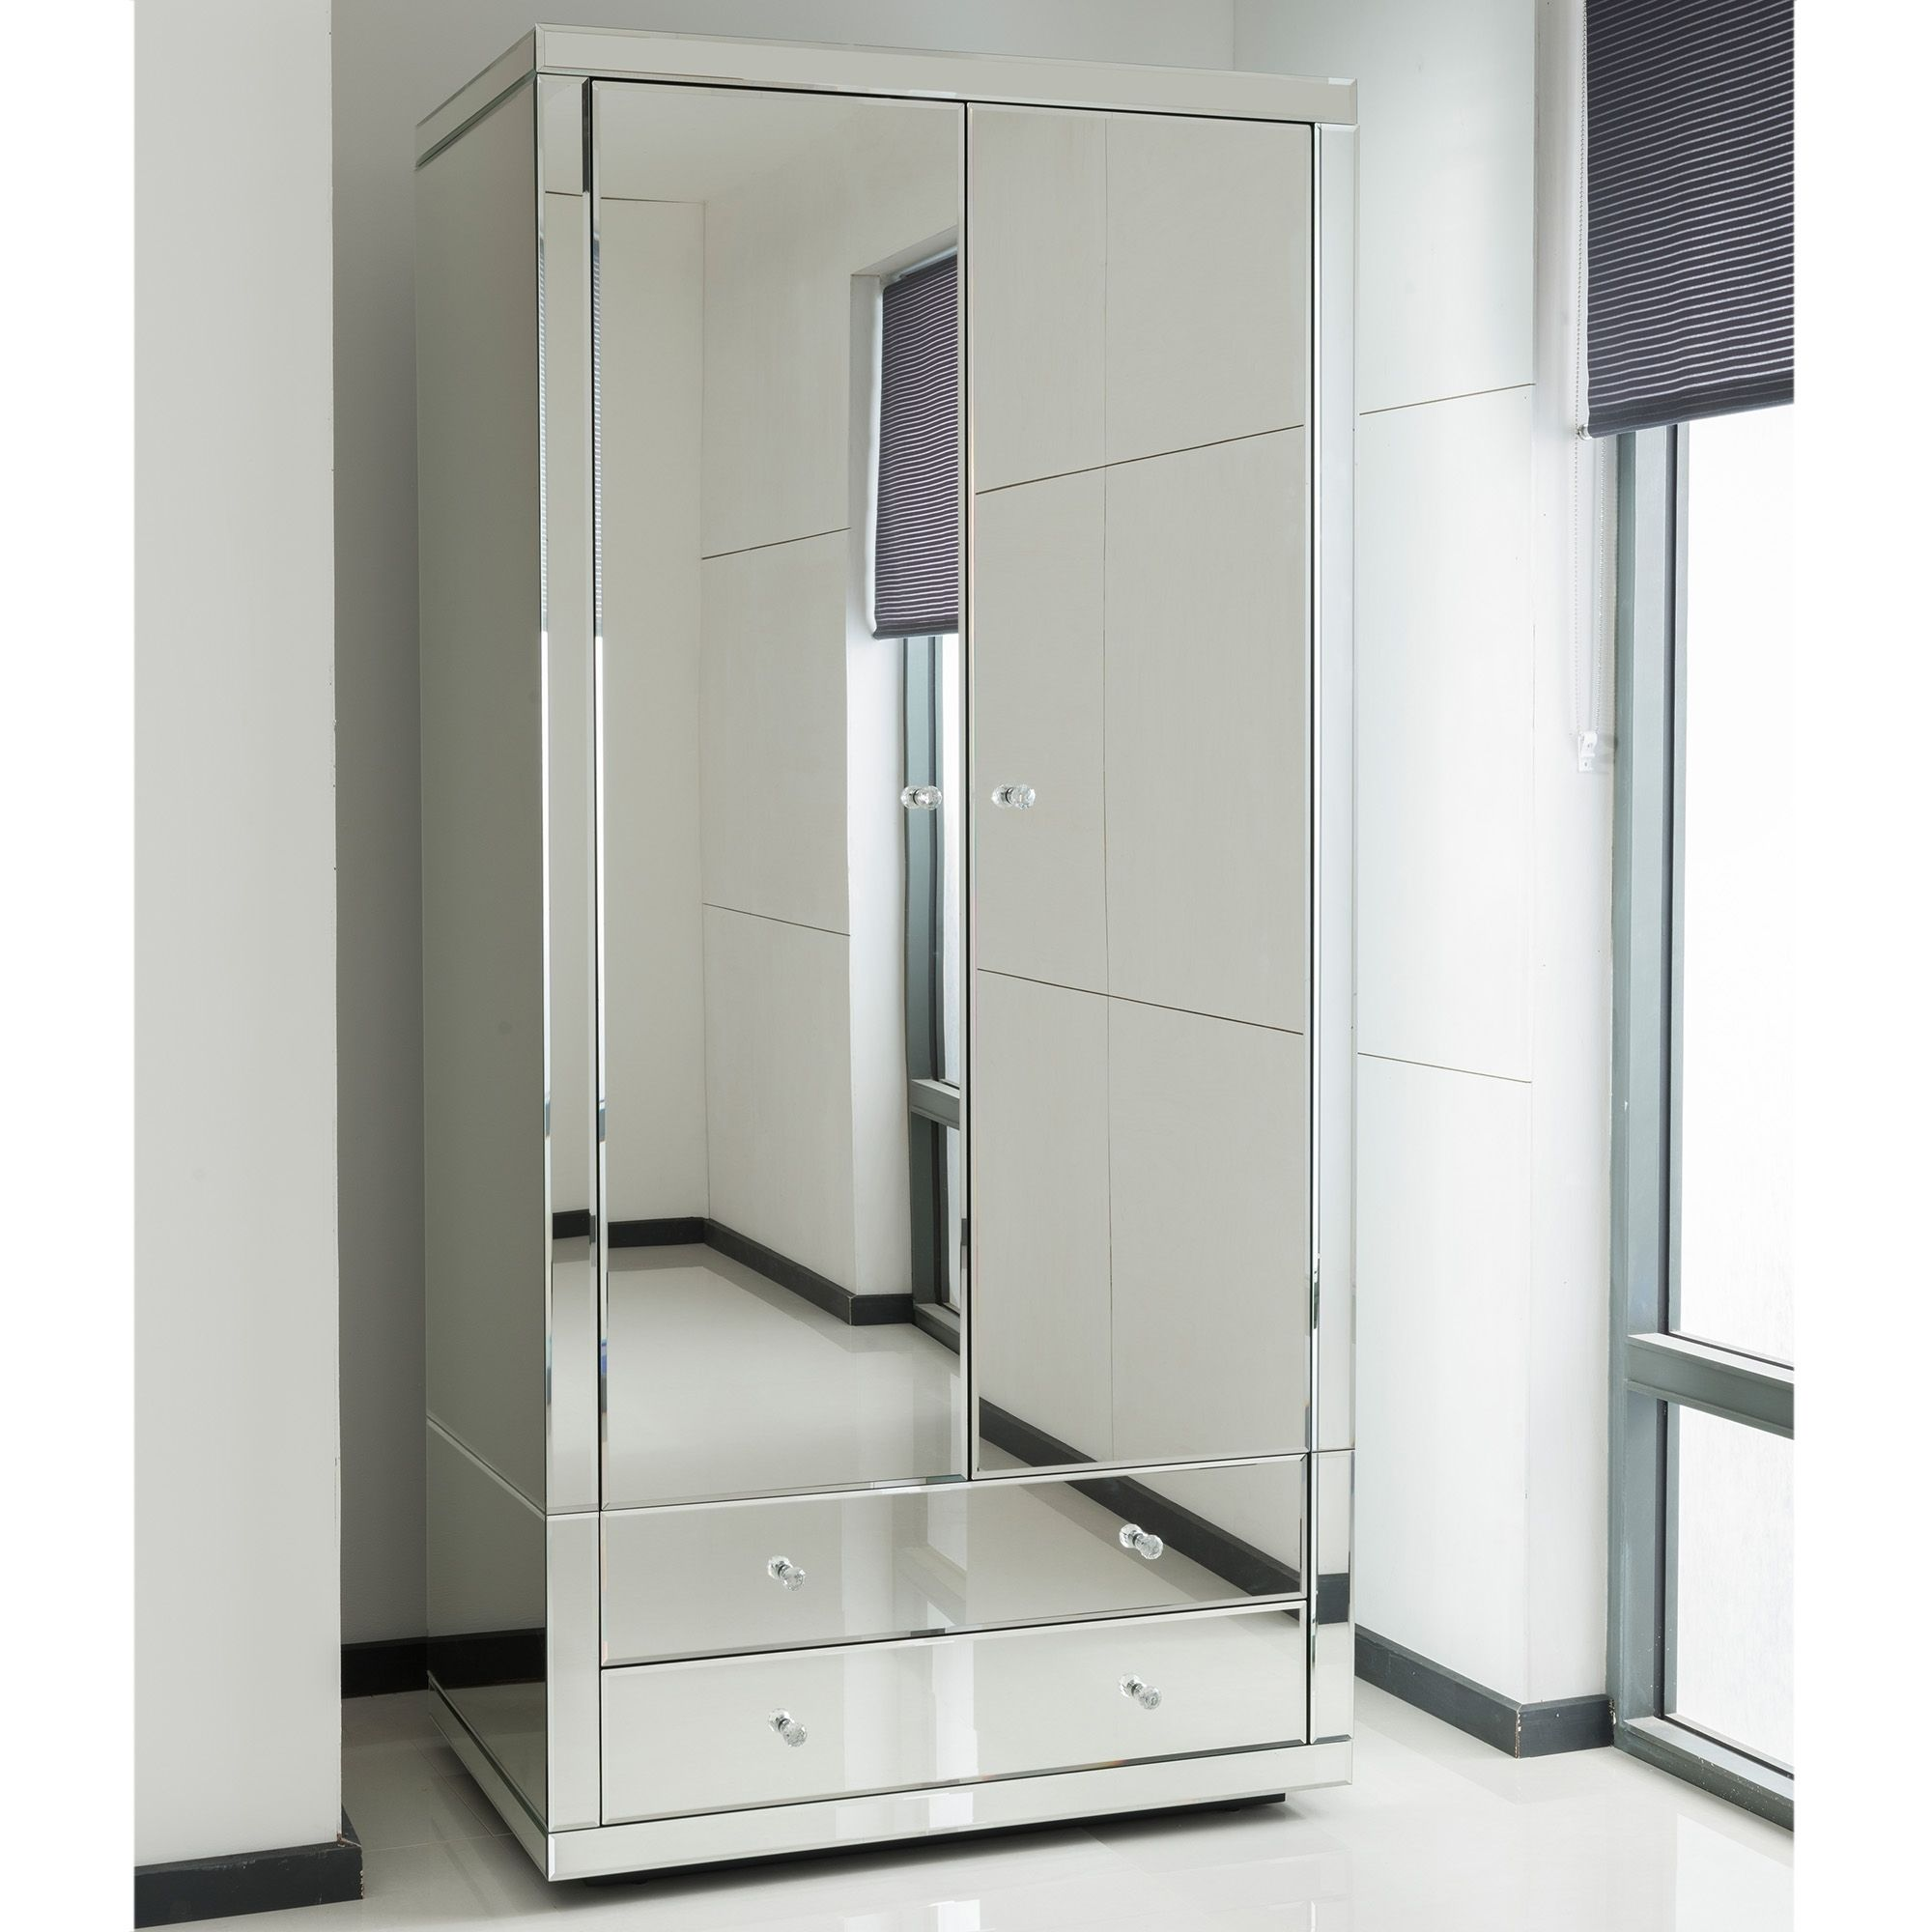 romano-crystal-mirrored-wardrobe safety tempered unbreakable glass mirror